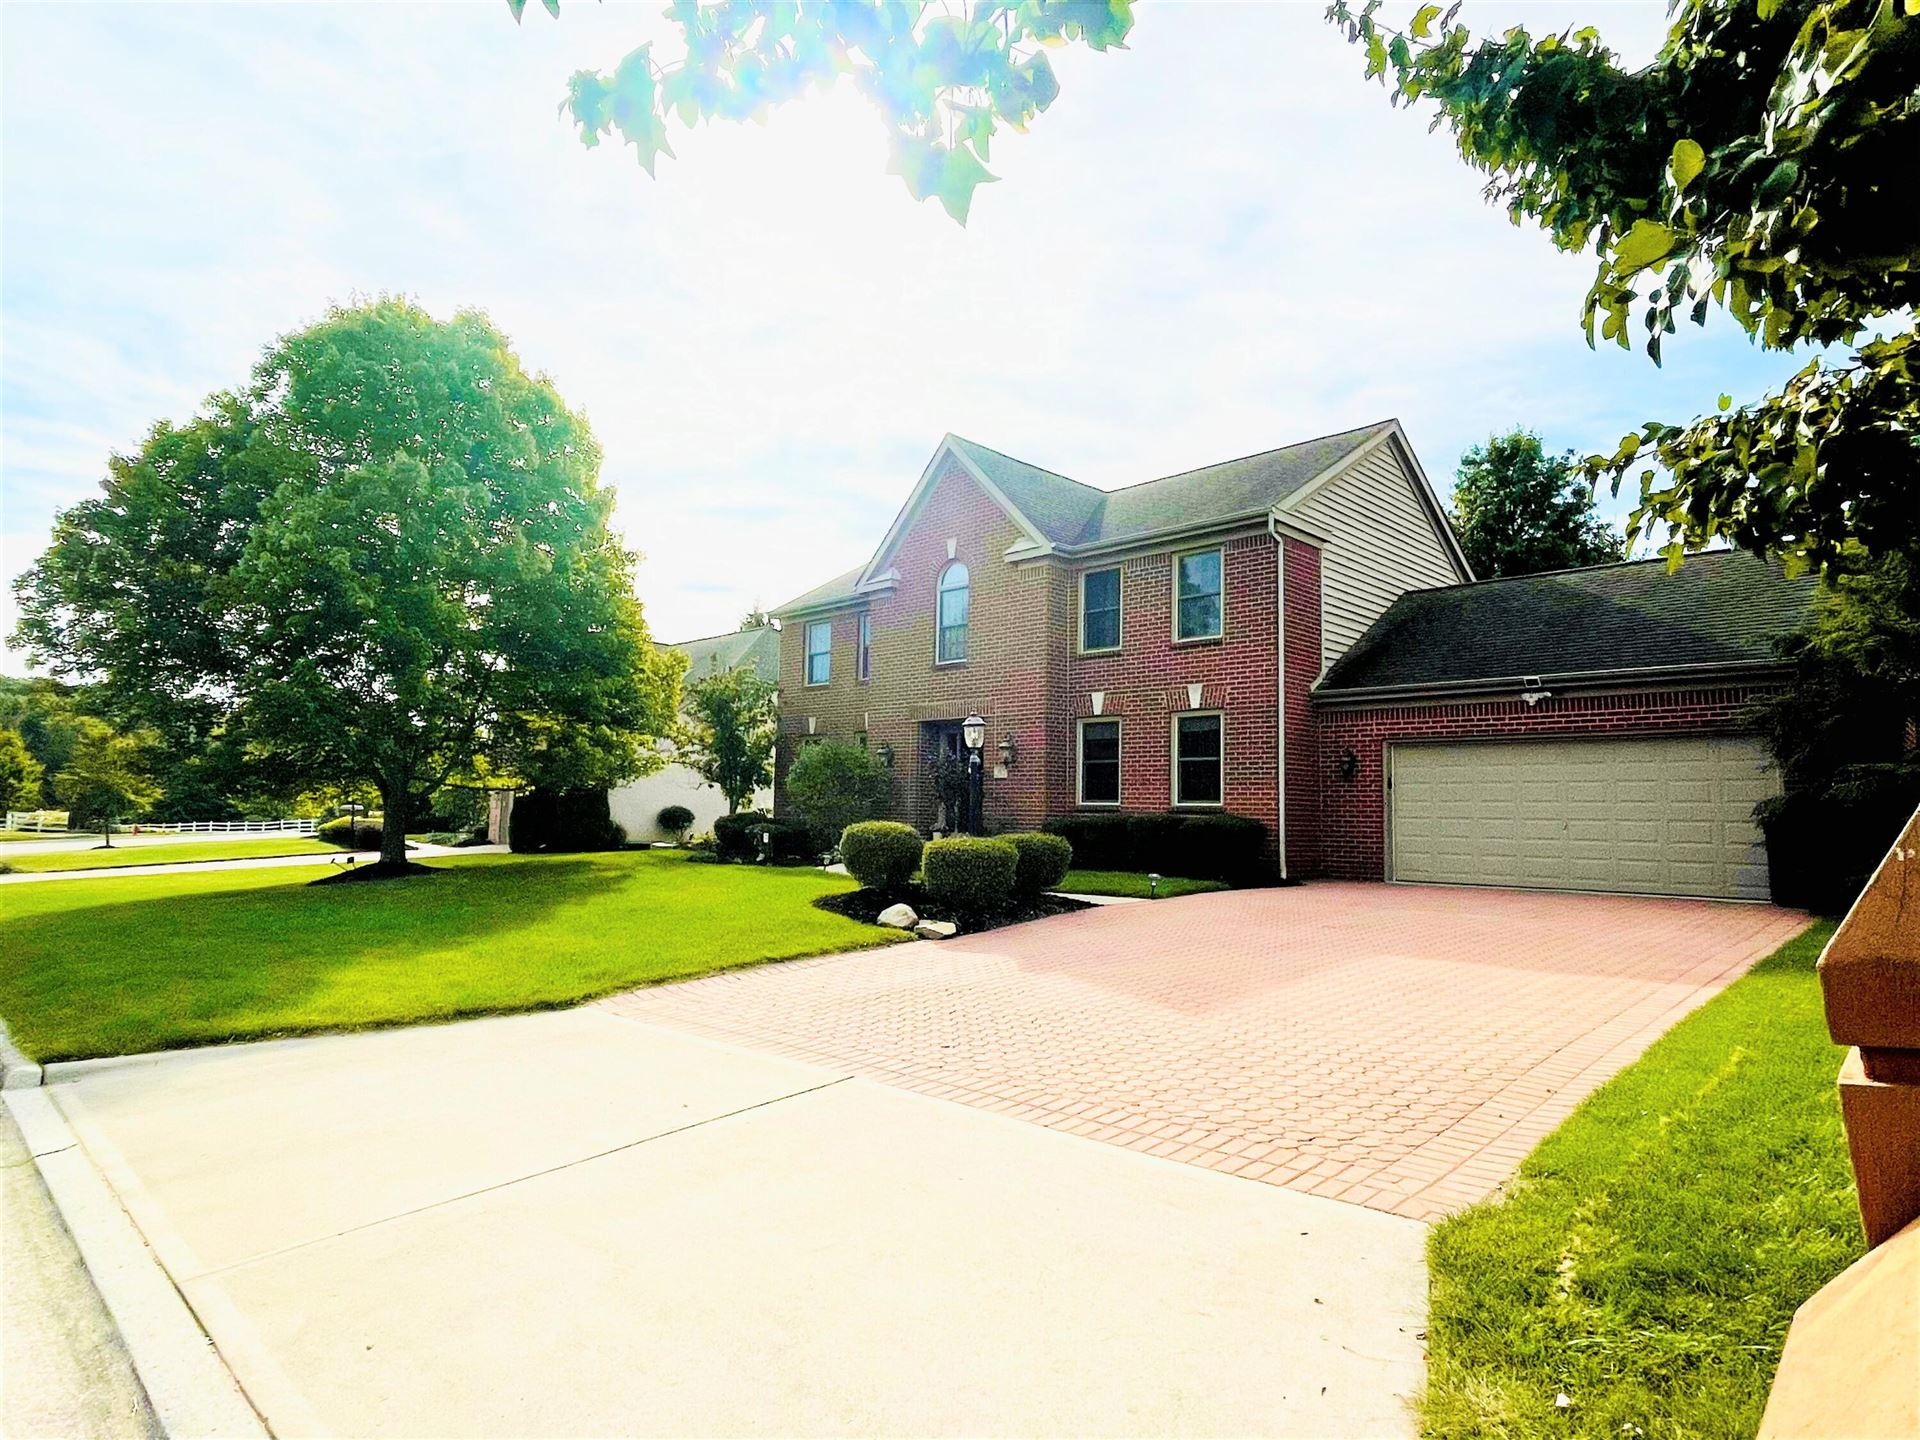 Photo of 311 Shalebrook Drive, Powell, OH 43065 (MLS # 221039524)